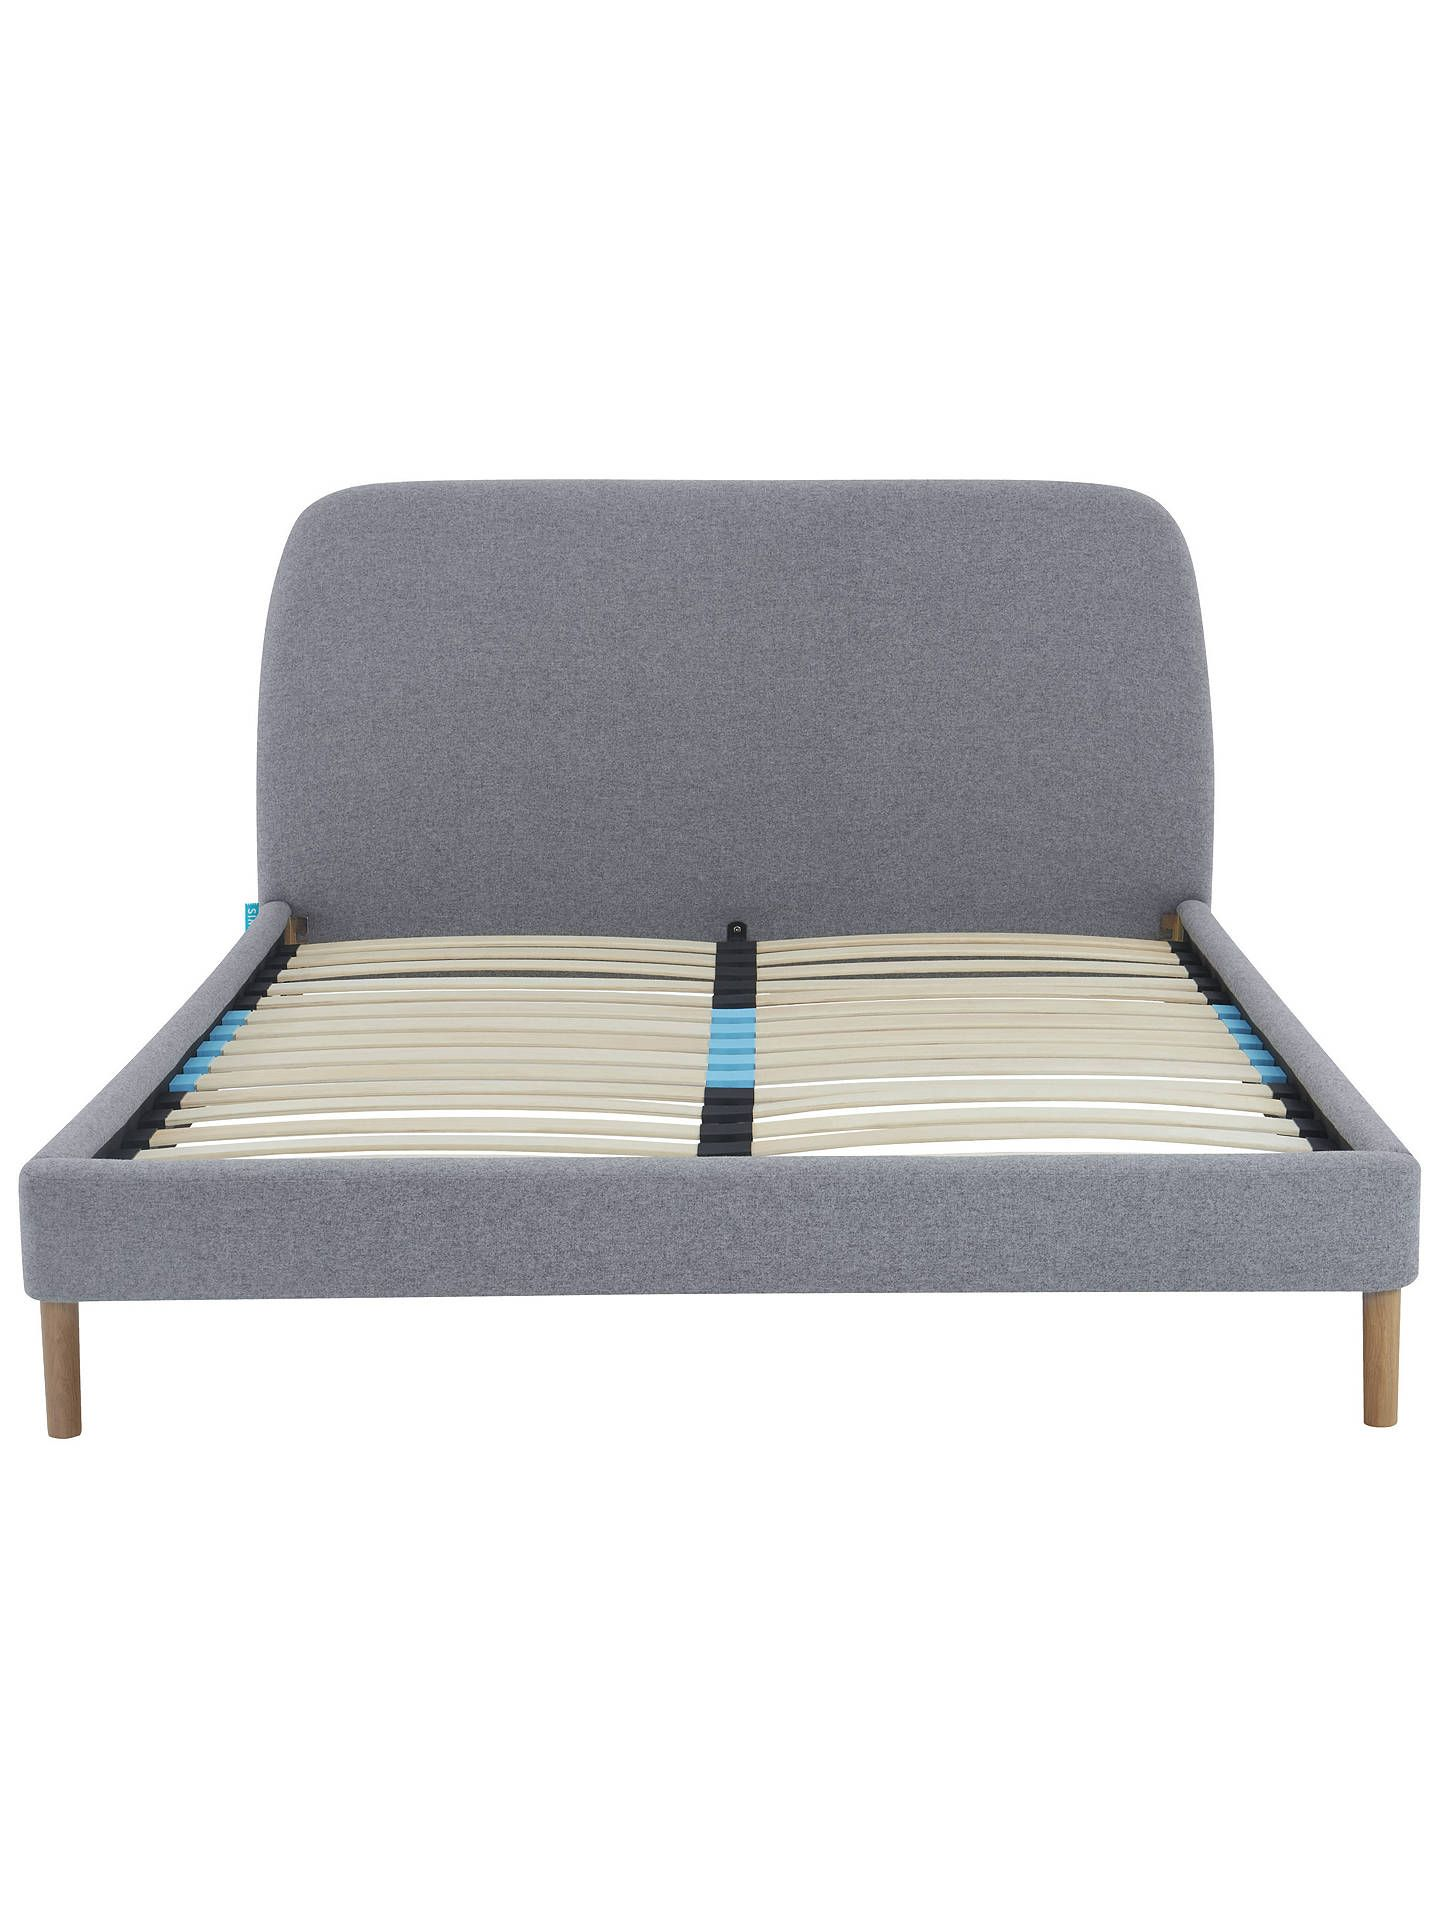 87ebfd3b63f0 BuySIMBA Upholstered Bed Frame with Headboard, Double, Grey Online at  johnlewis.com